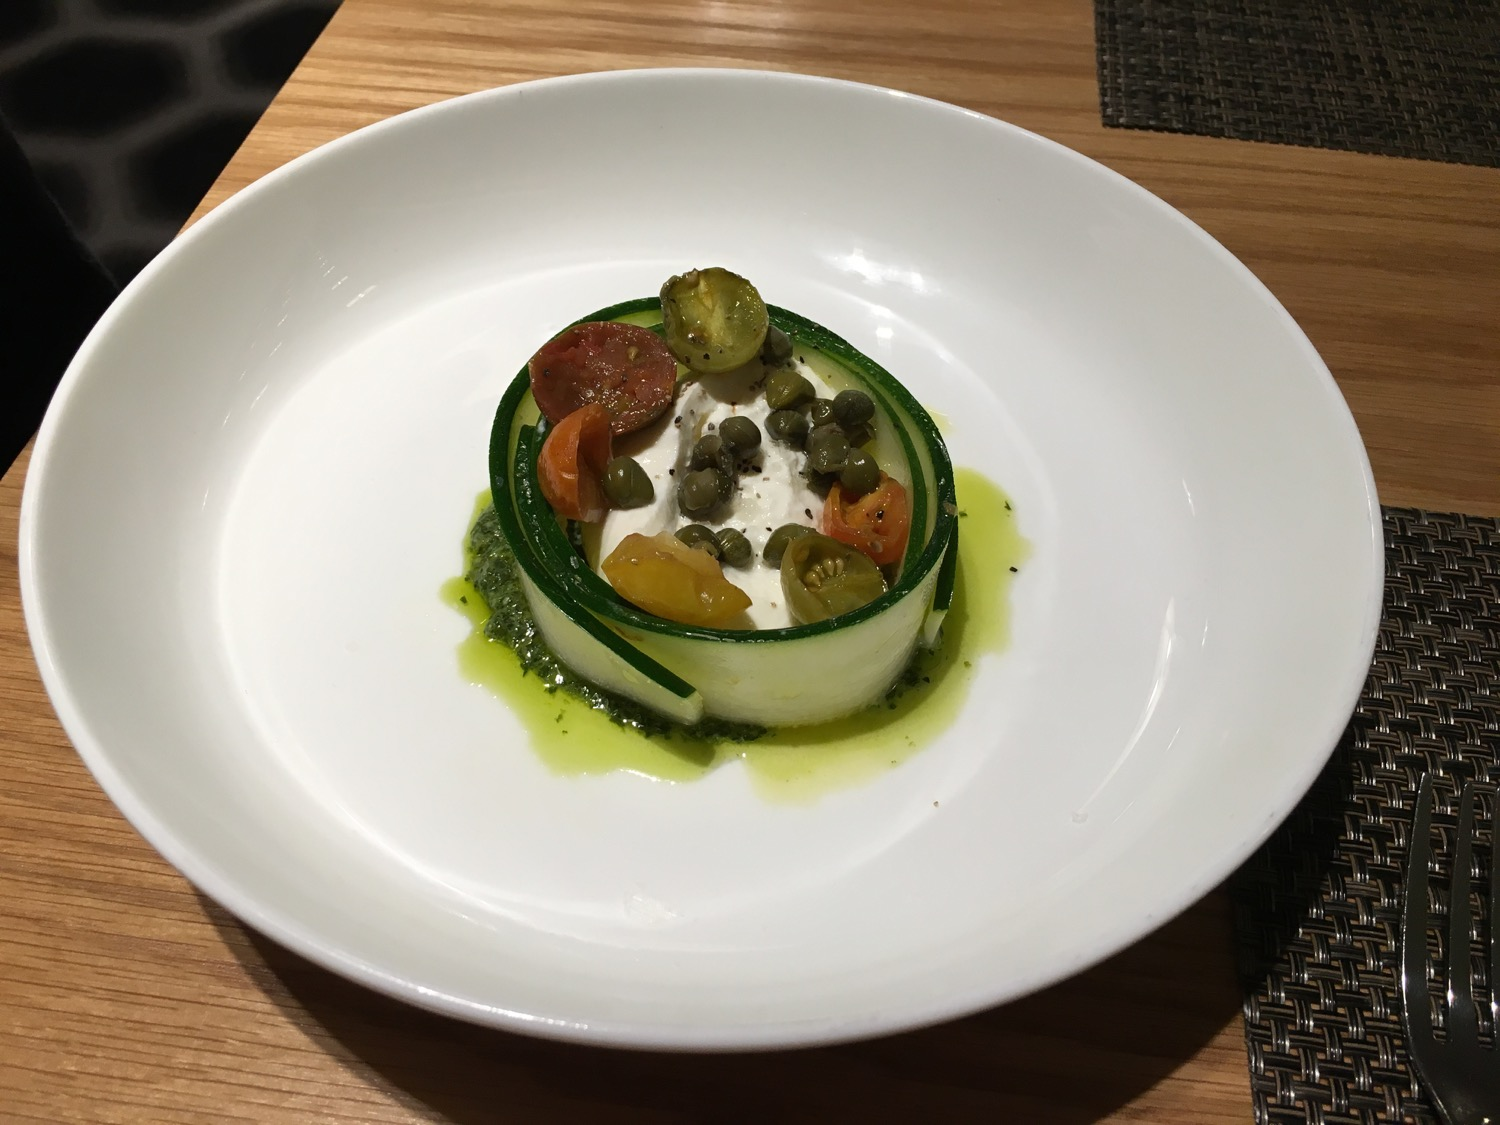 Qantas FirstClass Lounge Burrata - 1